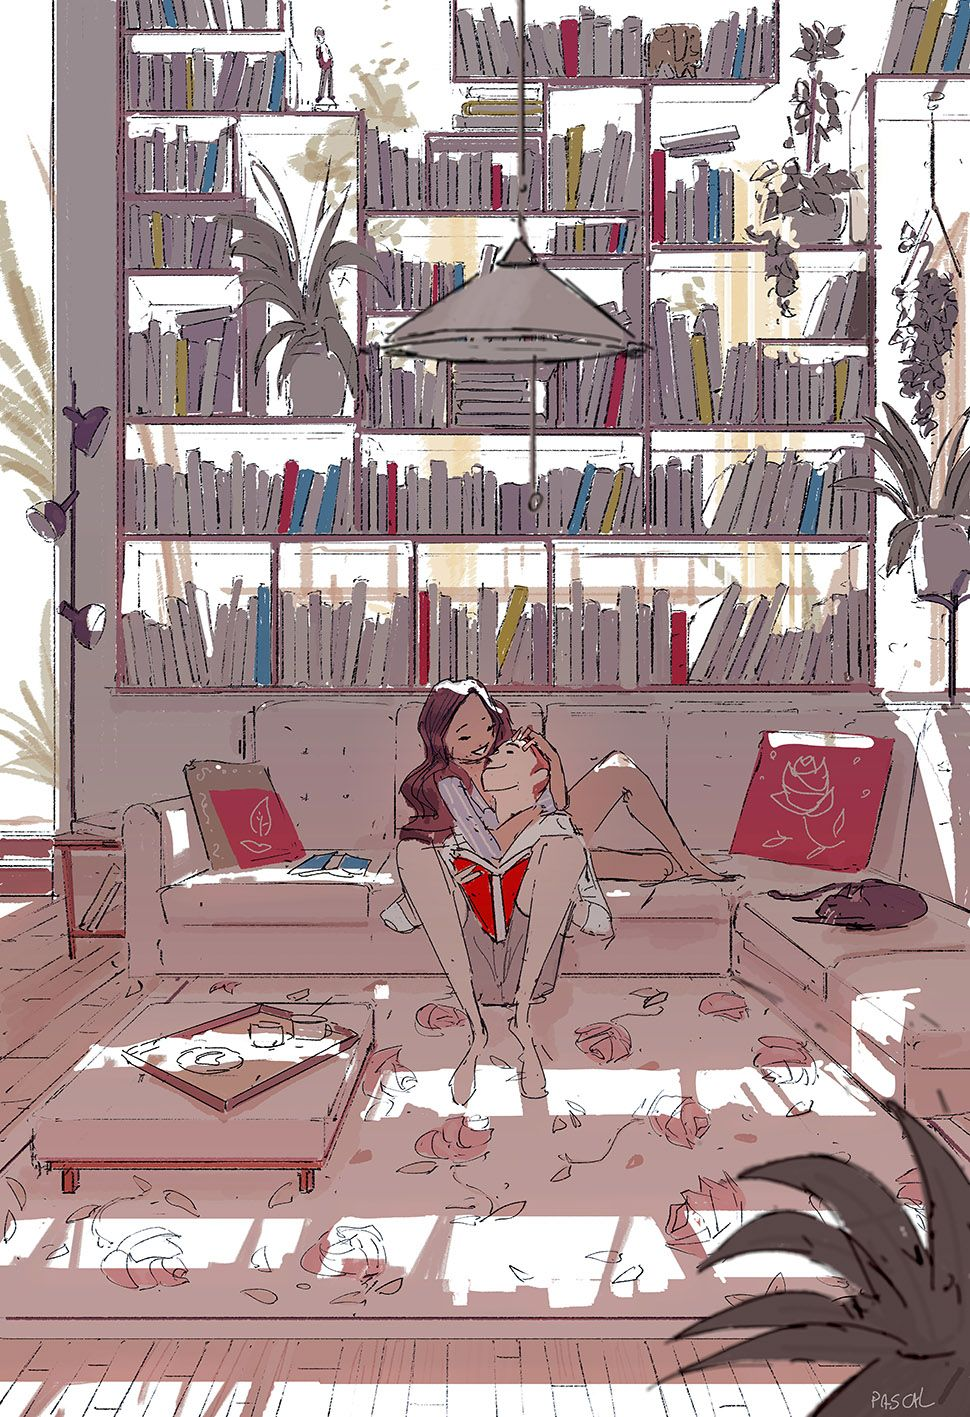 Meet me behind the bookshelf  #pascalcampion | Sketches in 2019